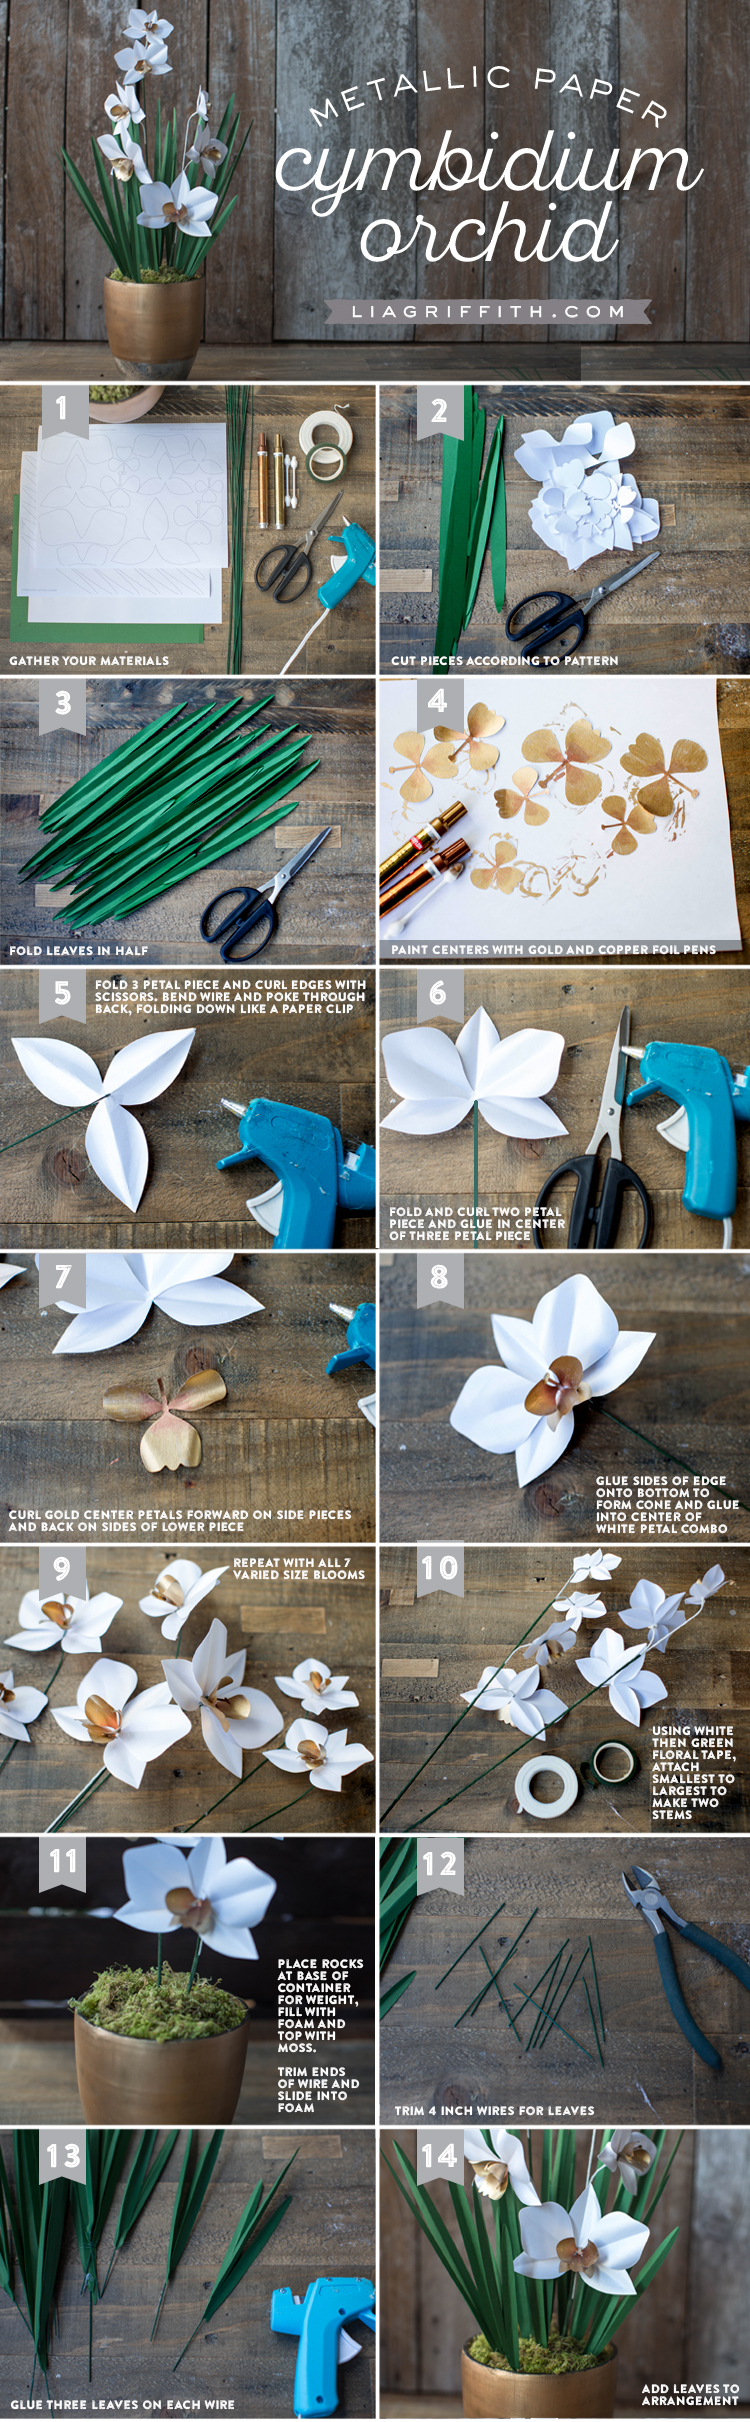 Paper Cymbidium Orchid Plant Lia Griffith They Poked Brads Through A Piece Of Cardboard Paperclip